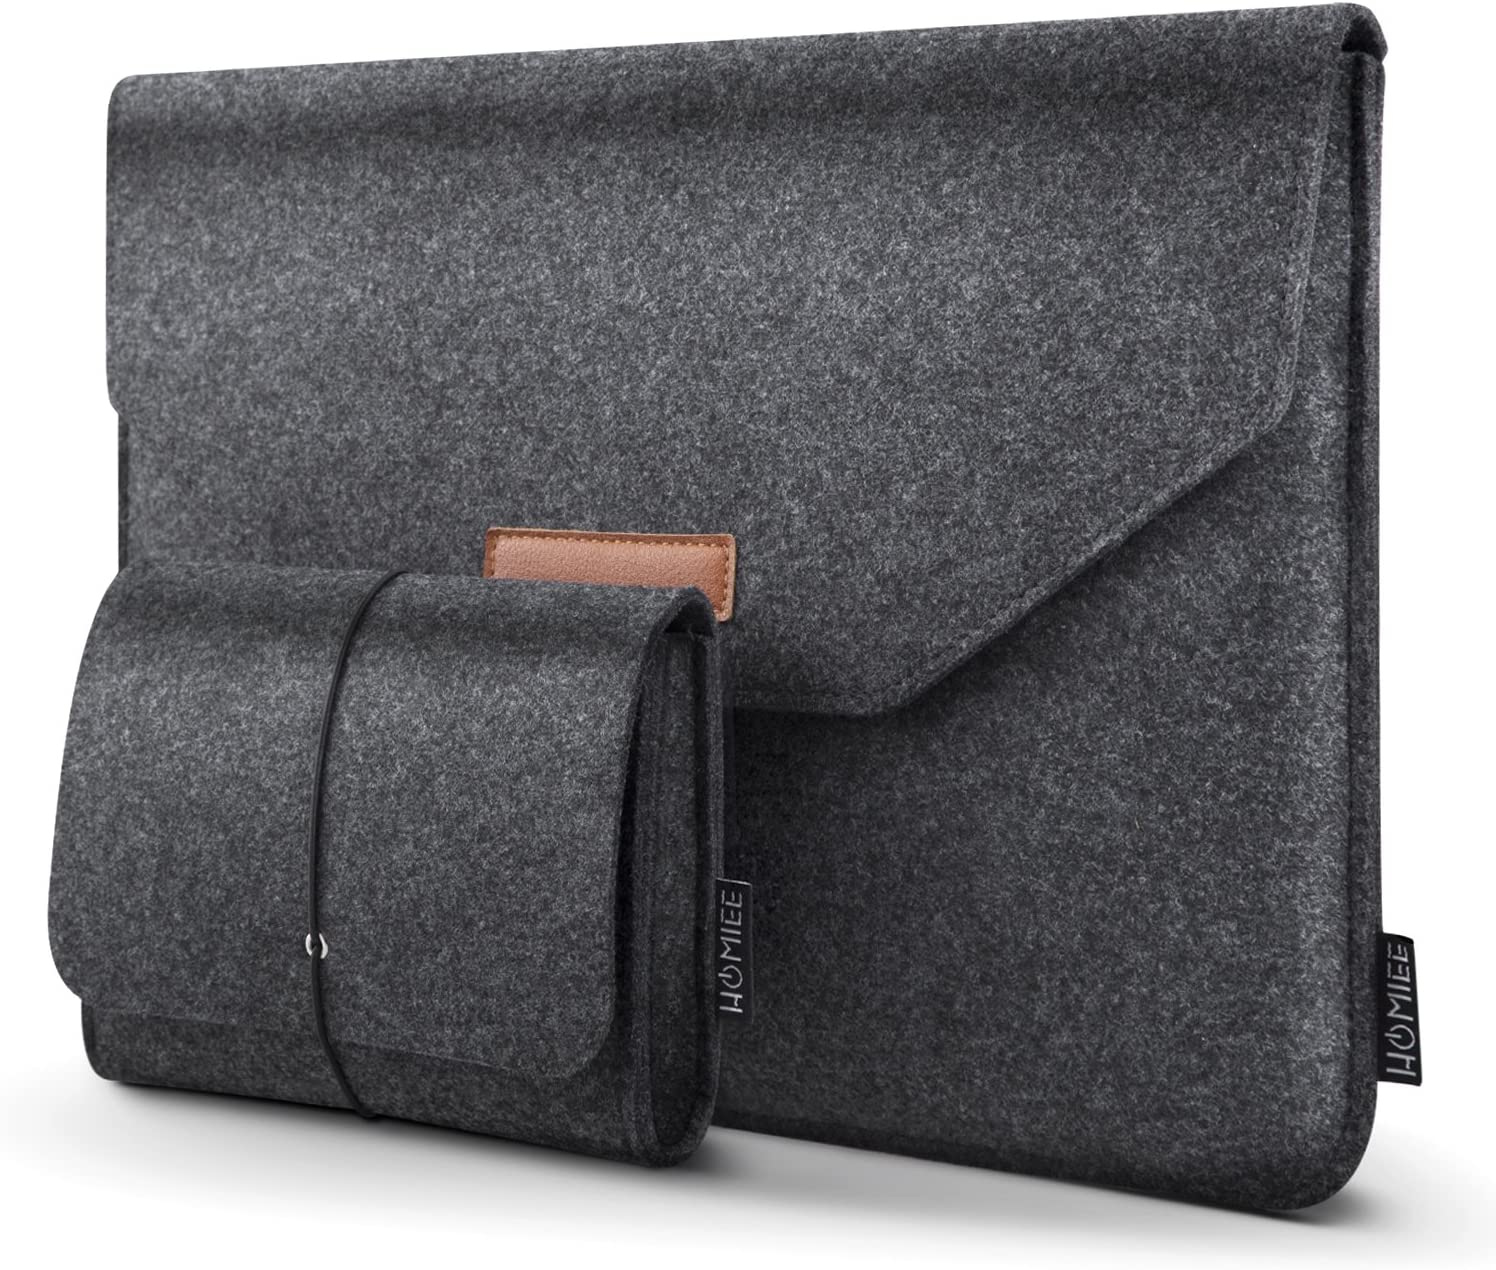 "HOMIEE 13-13.3 Inch Felt Laptop Sleeve Portable MacBook Case for MacBook Pro 2016-2019, MacBook Air 2017-2019, 12.9"" iPad Pro, Dell XPS 13, Lenovo/HP/Chromebook Ultra Slim Notebook, Dark Gray"